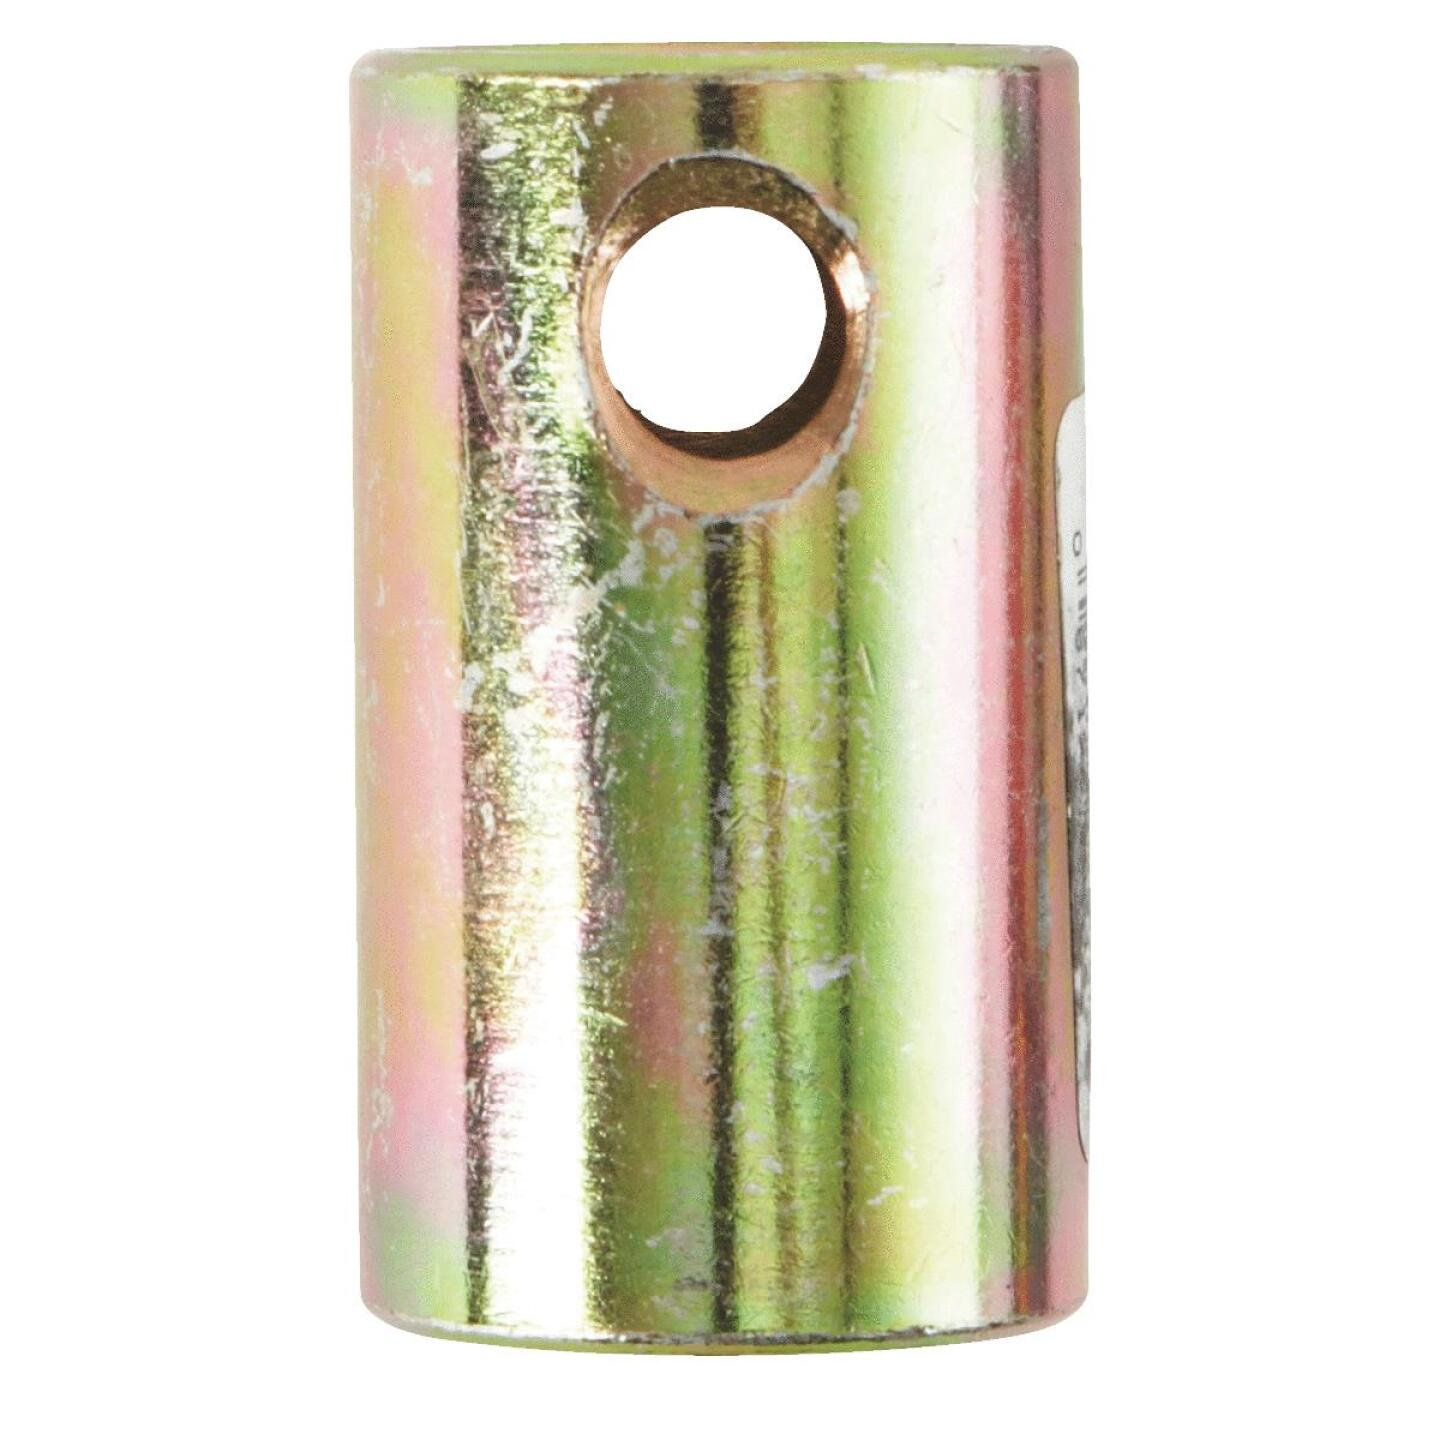 Speeco Category 2-3 2-1/2 In. Steel Lift Arm Reducer Bushing Image 2